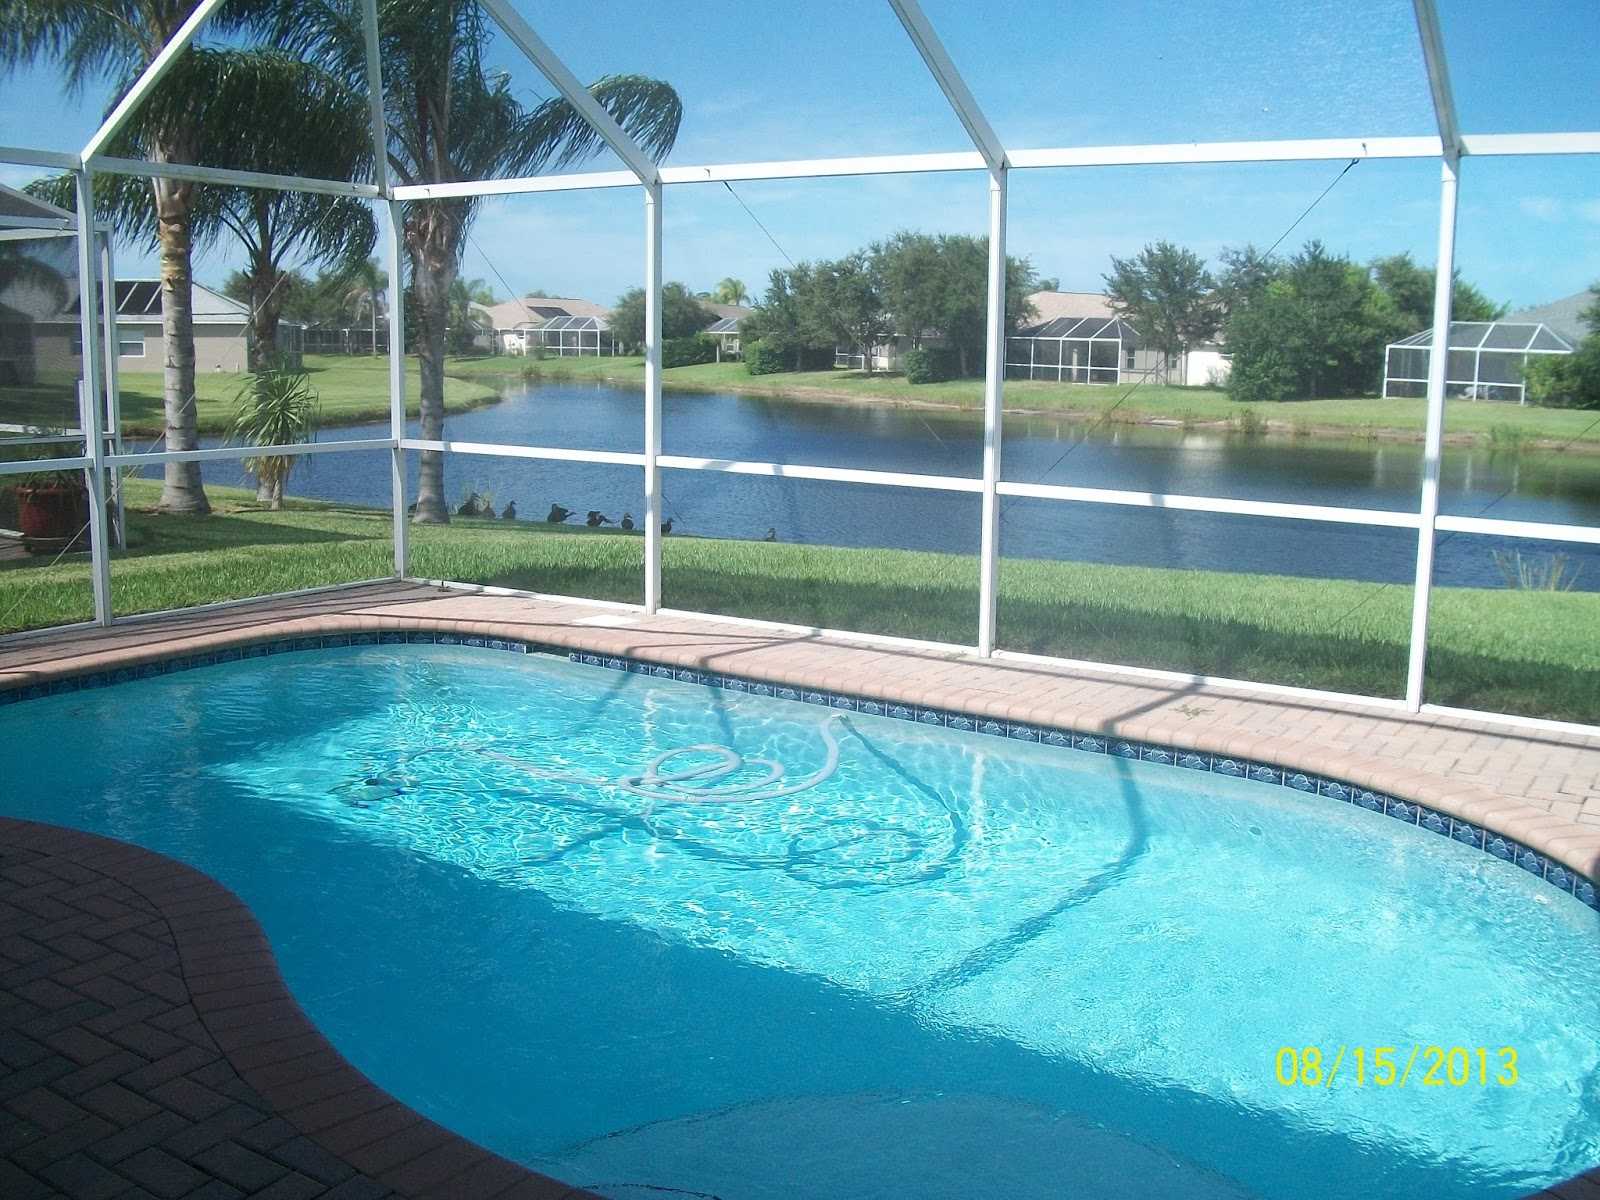 viera florida pool home for sale 200 000